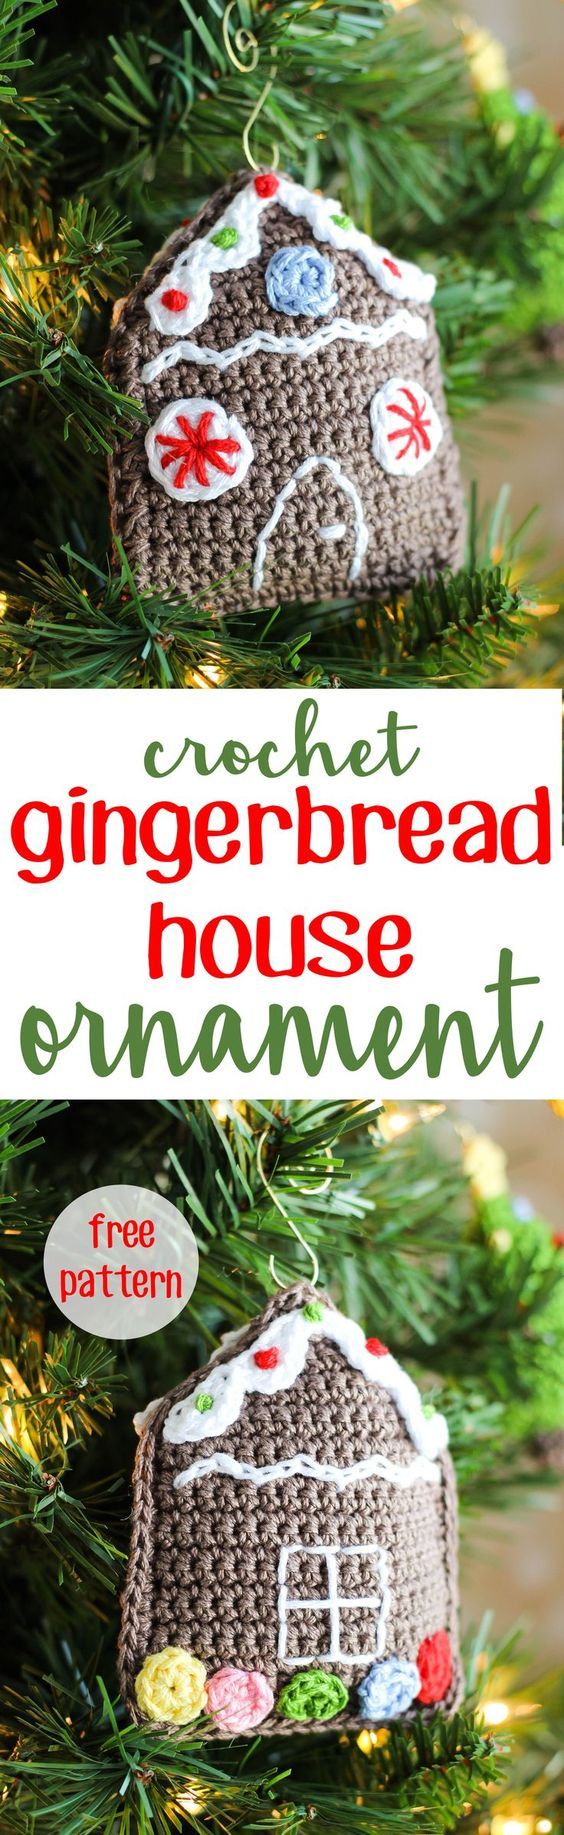 Gingerbread House Christmas Ornament   25 Days of Christmas Traditions CAL   Free Crochet Pattern from Sewrella